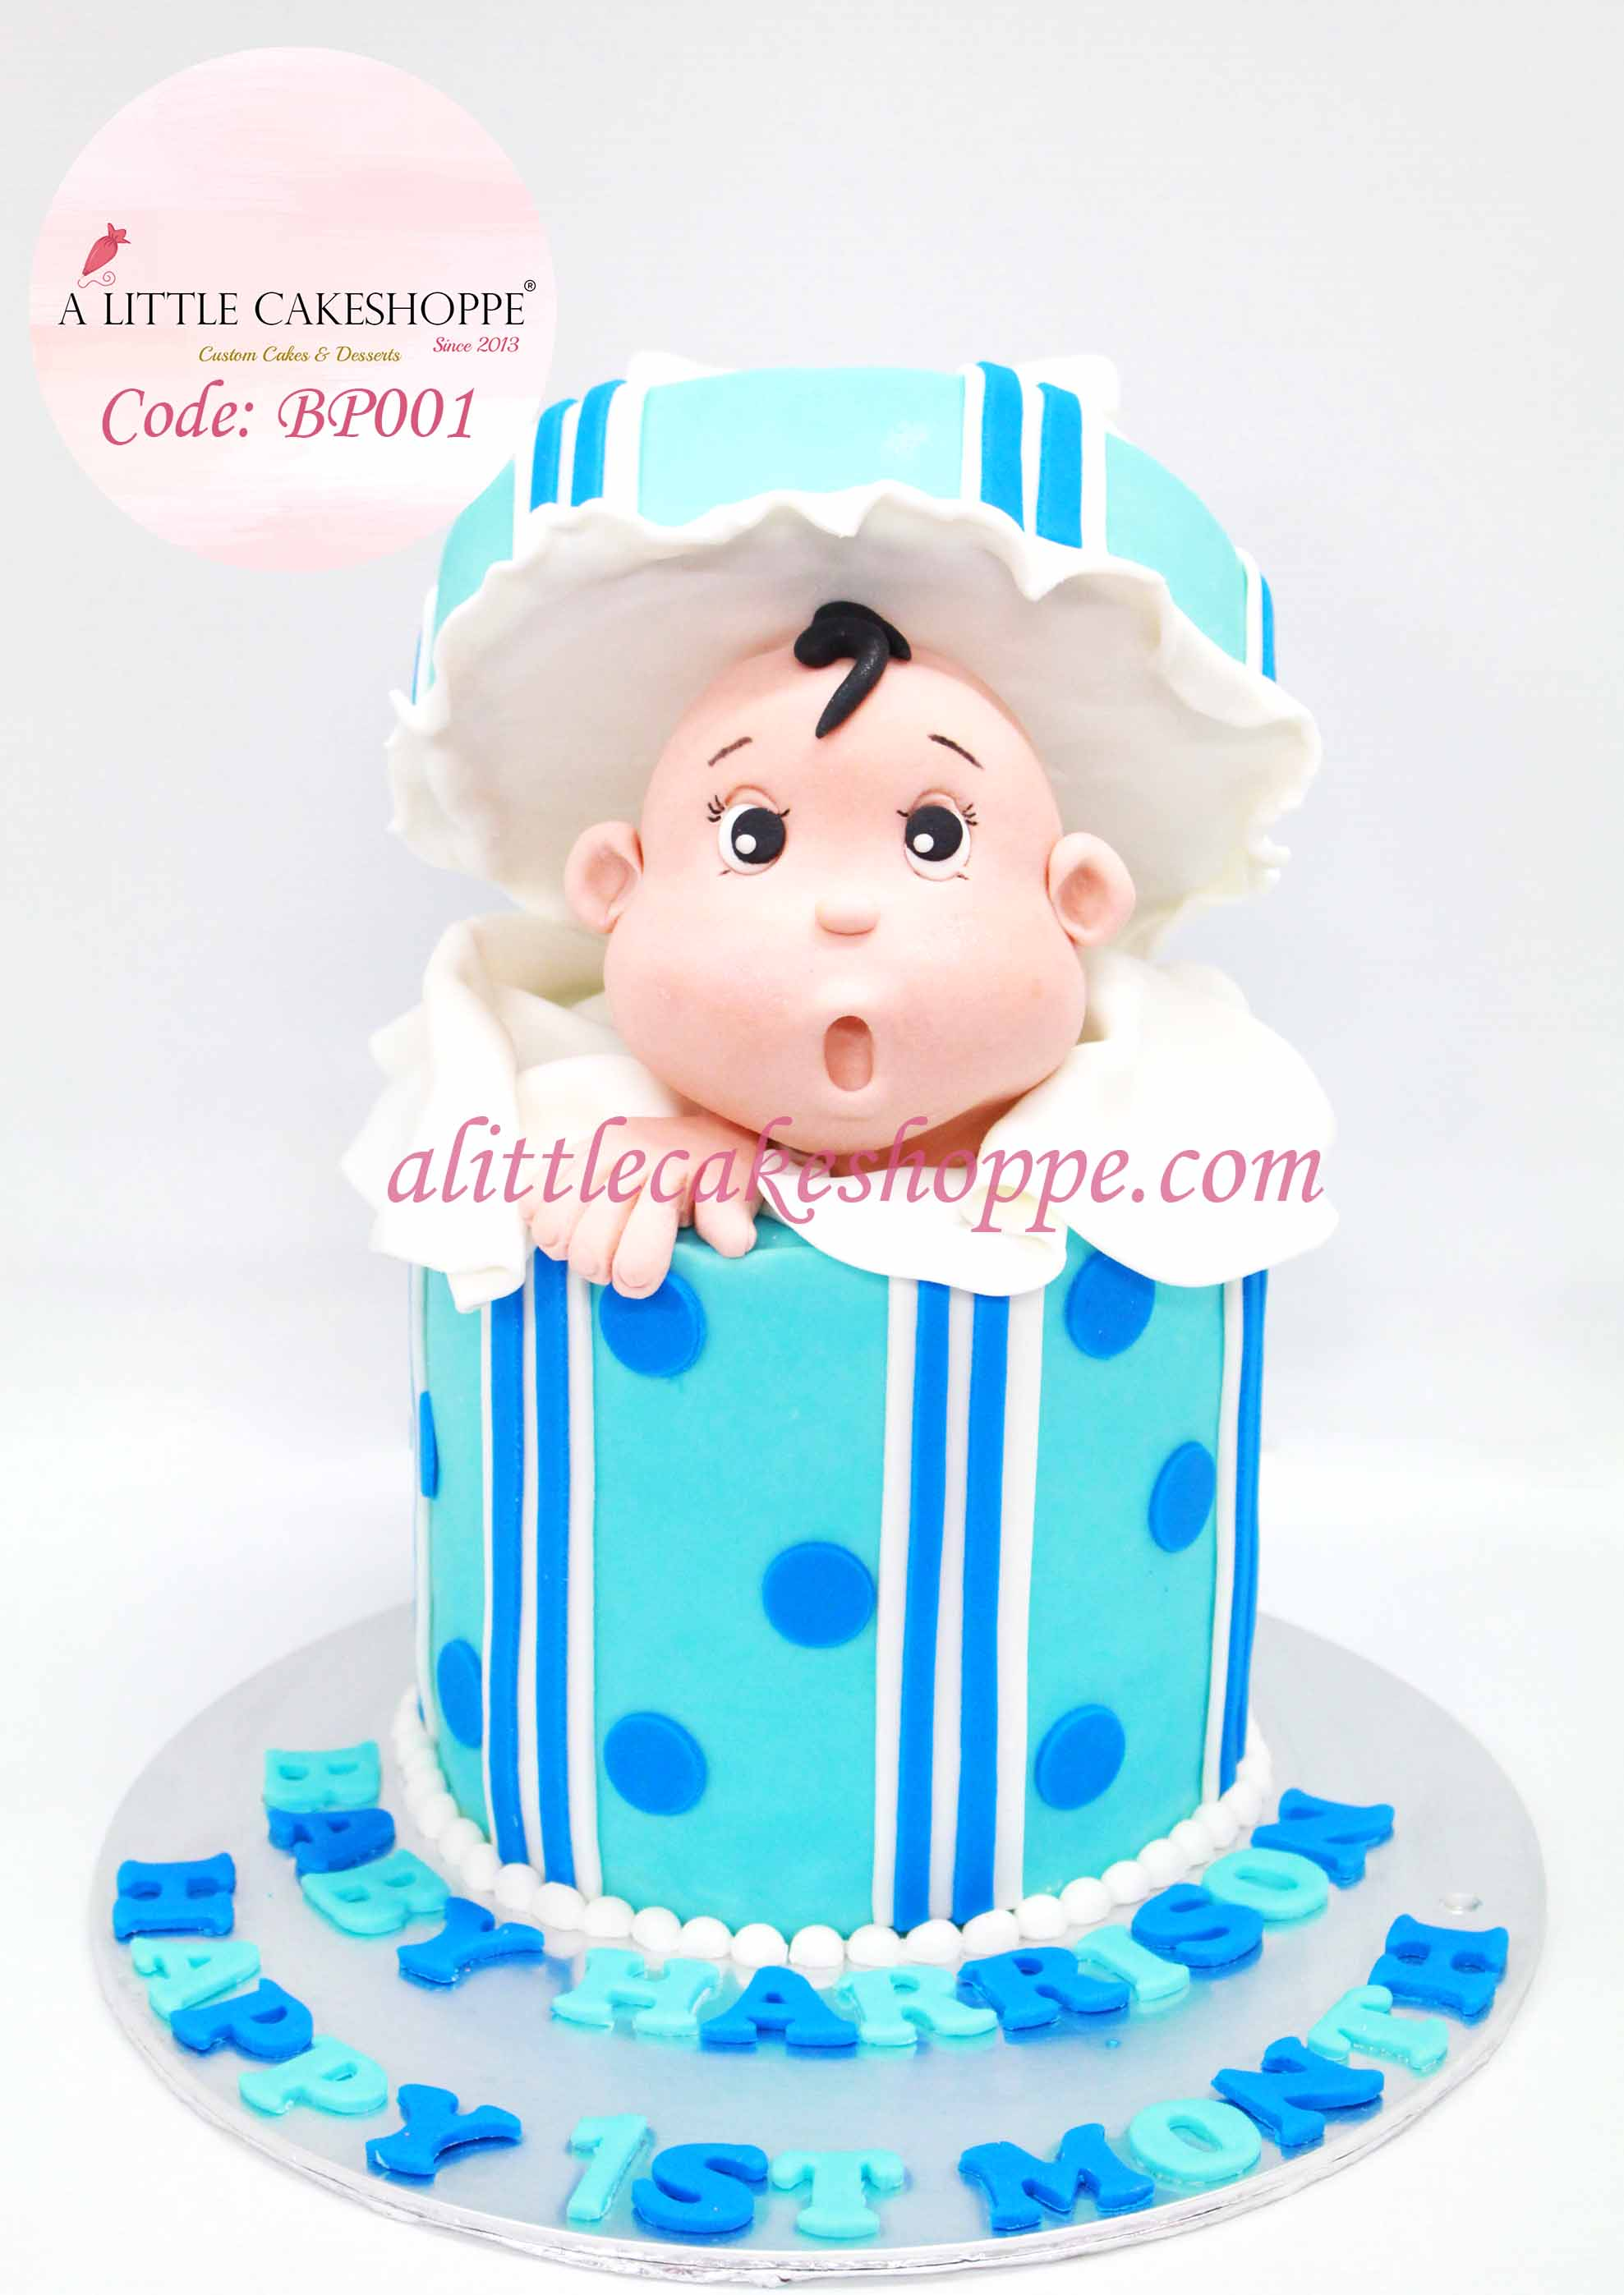 Best Customised Cake Shop Singapore custom cake 2D 3D birthday cake cupcakes desserts wedding corporate events anniversary 1st birthday 21st birthday fondant fresh cream buttercream cakes alittlecakeshoppe a little cake shoppe compliments review singapore bakers SG cake shop cakeshop ah beng who bakes baby